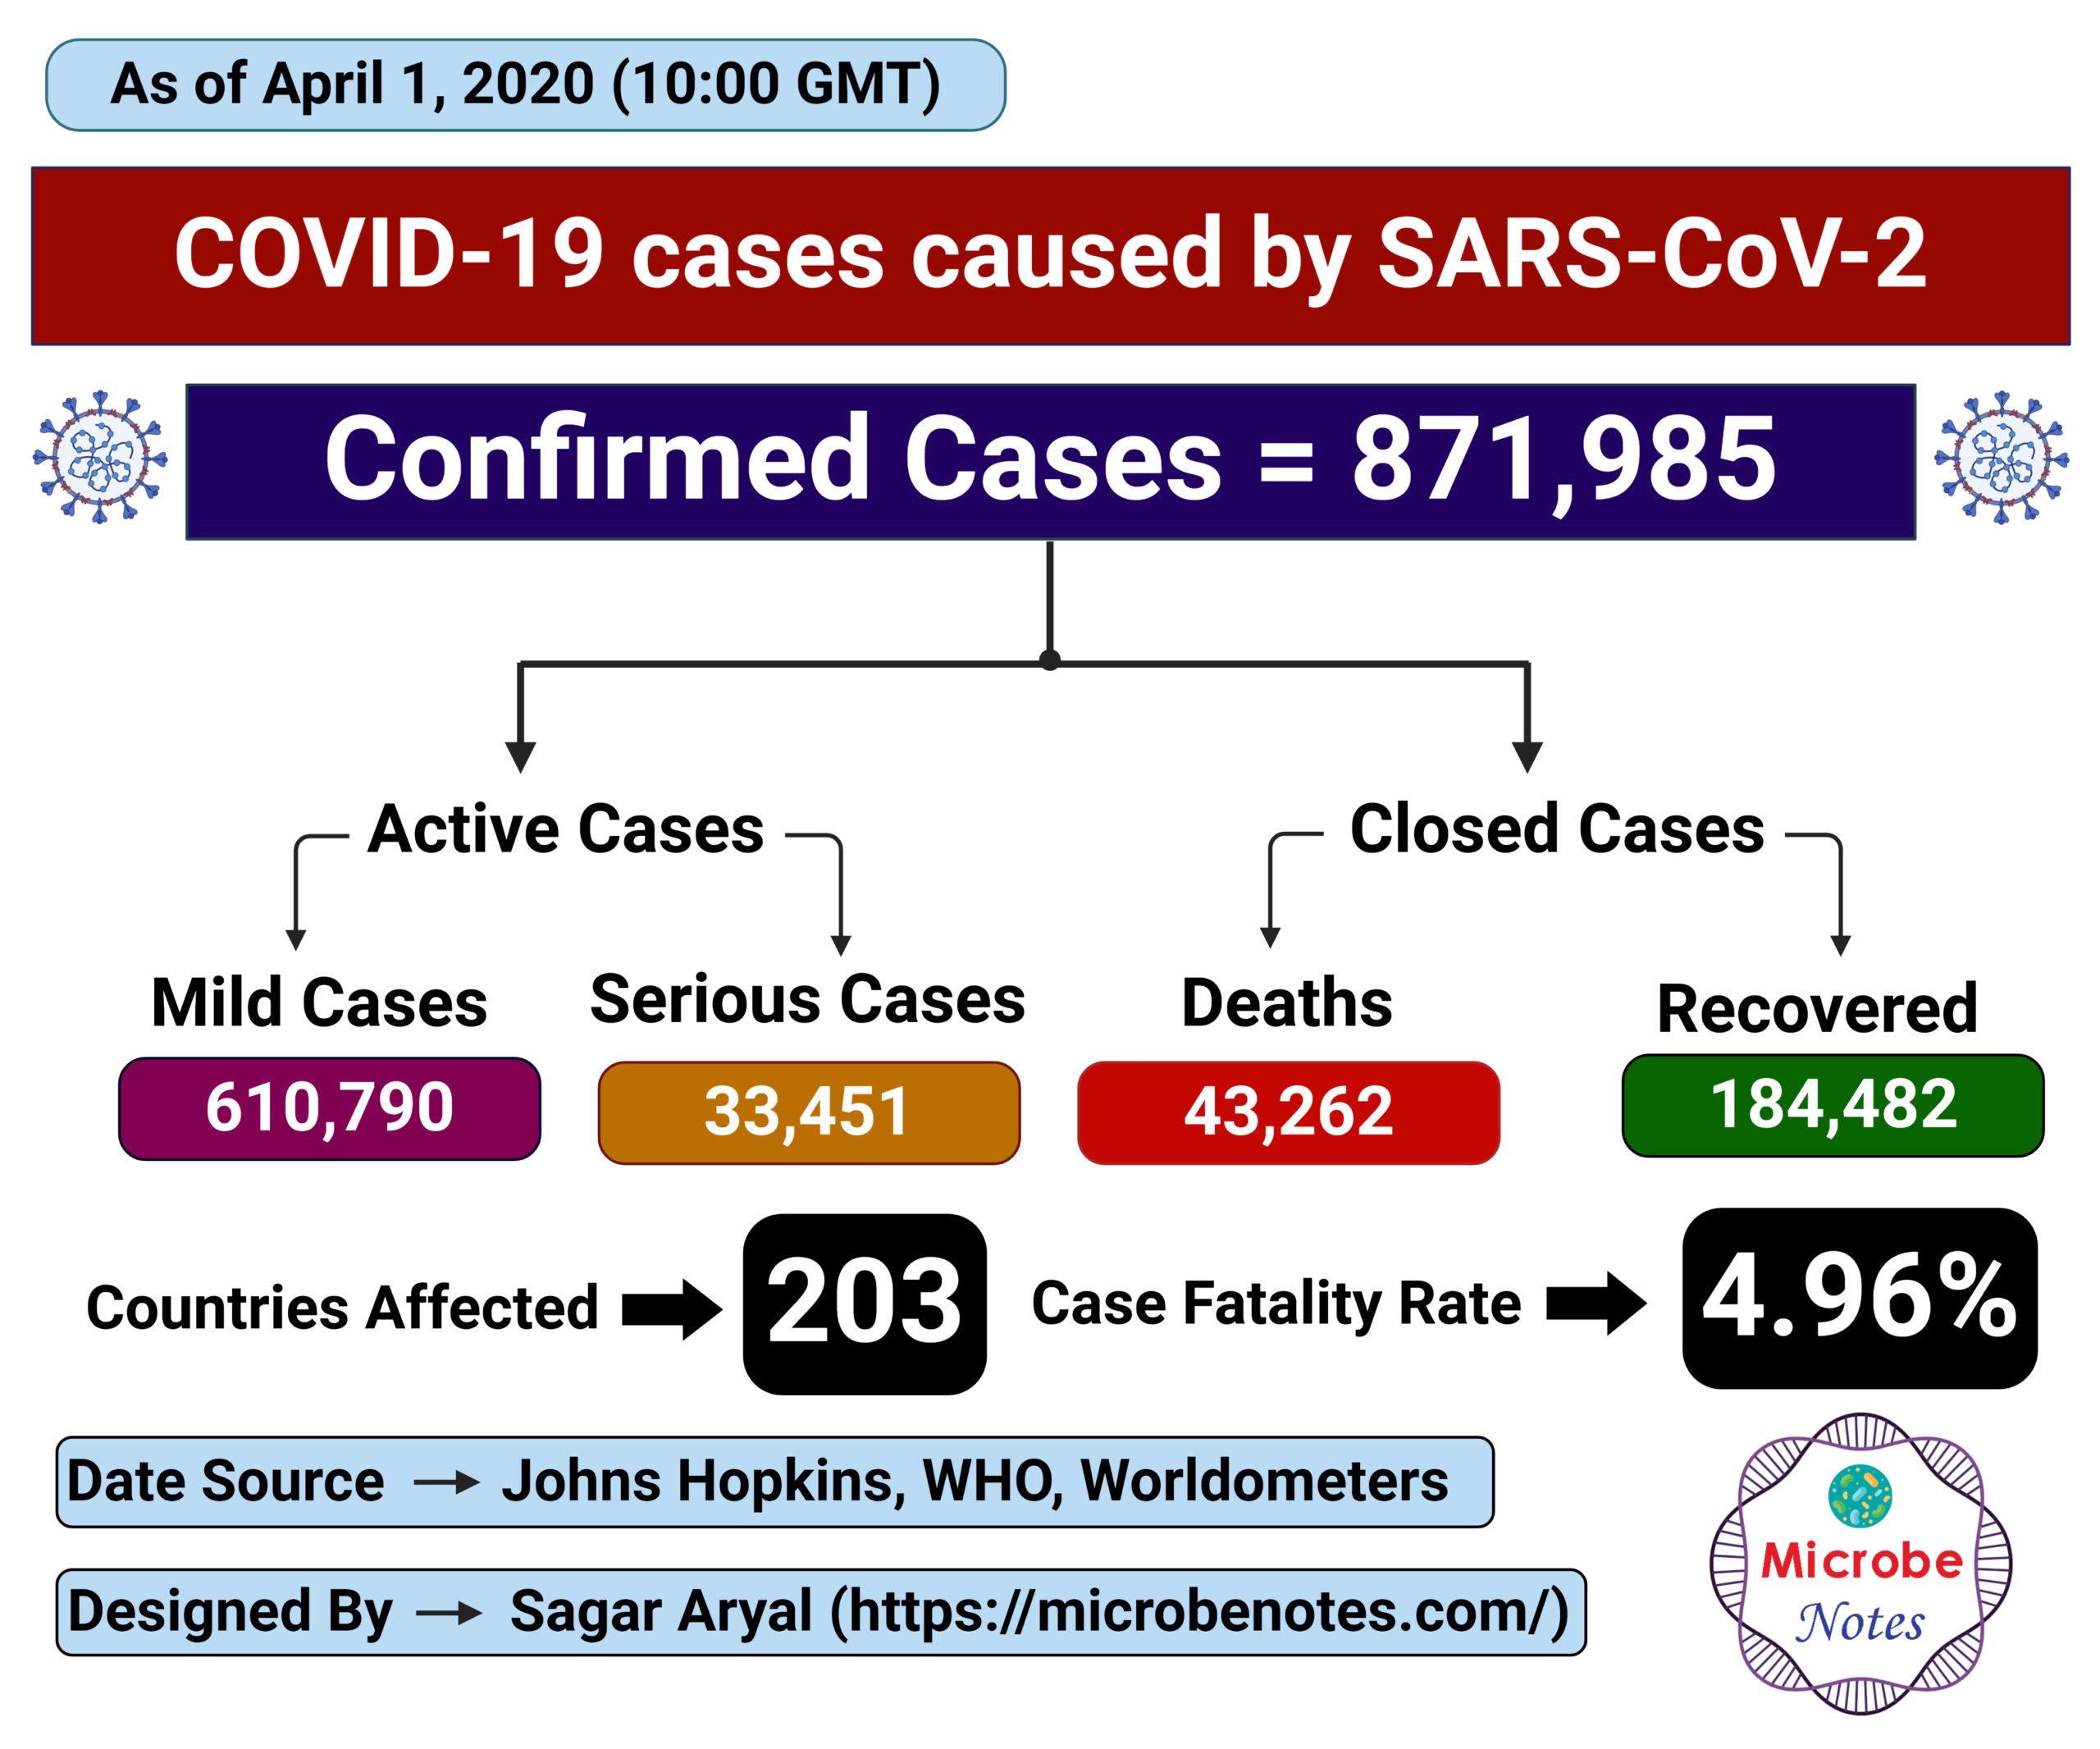 Epidemiology of COVID-19 caused by SARS-CoV-2 as of April 1, 2020